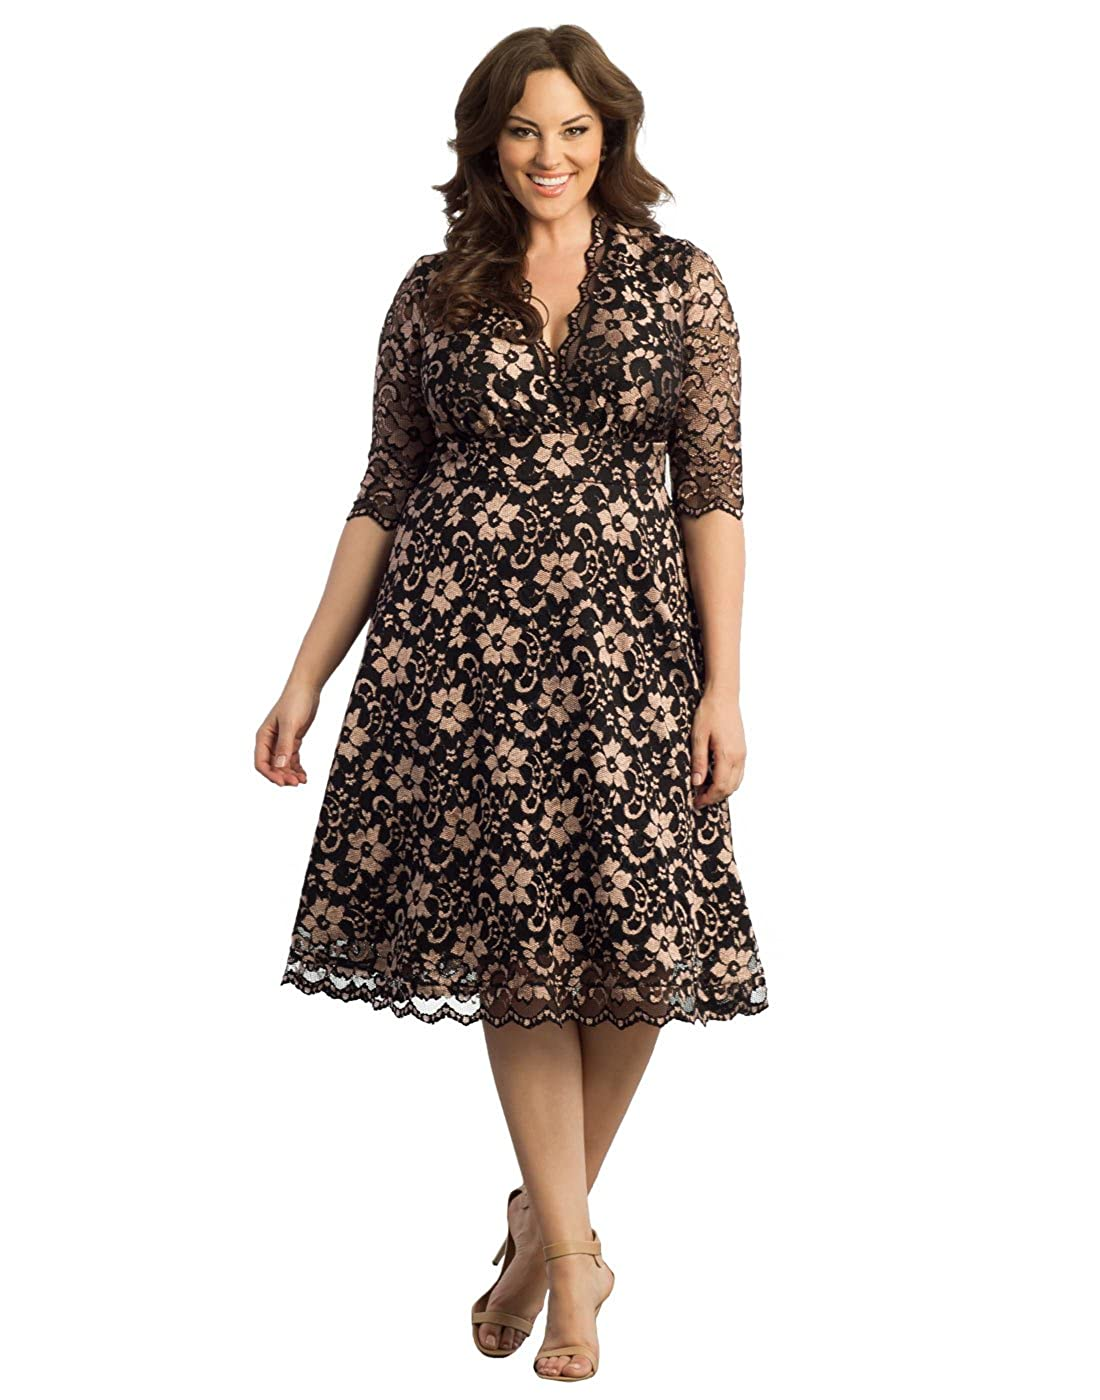 Plus Size Retro Dresses Kiyonna Womens Plus Size Mademoiselle Lace Dress $164.00 AT vintagedancer.com